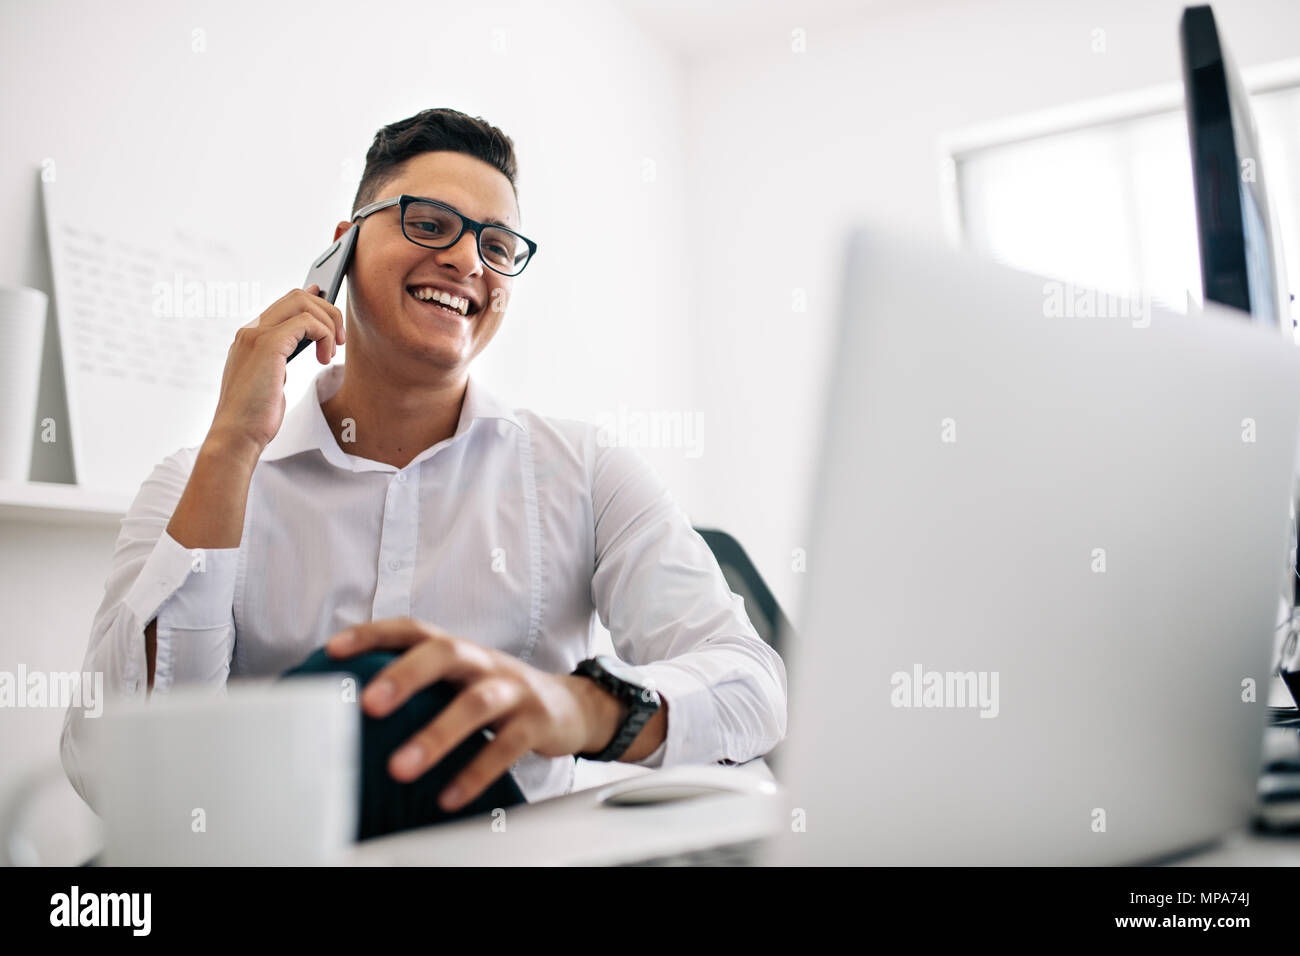 Smiling software developer talking over mobile phone sitting at his office desk with a laptop and coffee cup in front. Man wearing spectacles working  - Stock Image